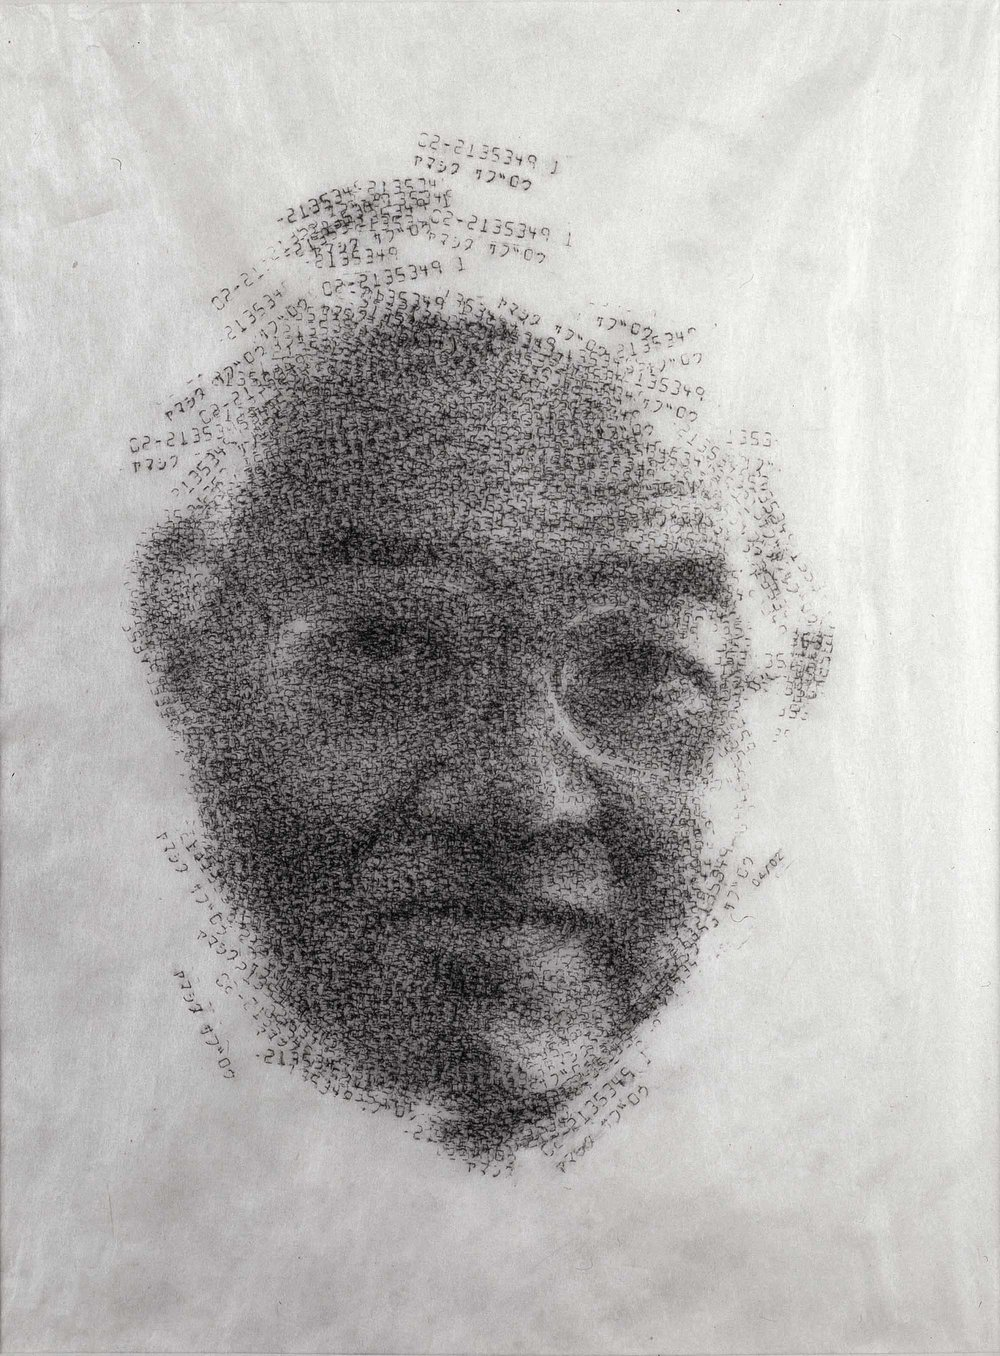 SABURO   2001 H45, W35 cm Japanese paper, graphite Private collection